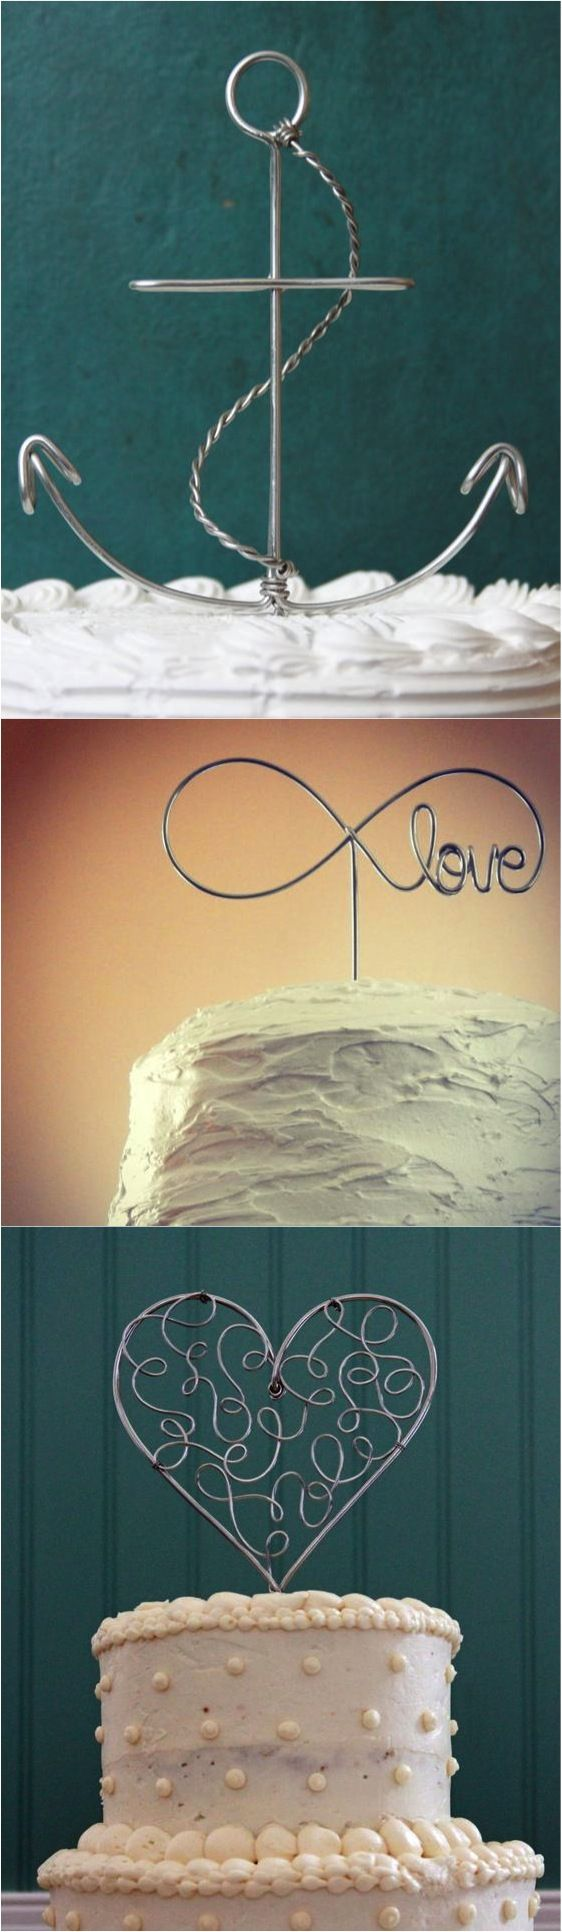 These gorgeous wire wrapped cake toppers can be made for most themes, including an anchor cake topper for a nautical wedding or an infinity cake topper for that ultra romantic wedding! | Made on Hatch.co by independent designers and makers.